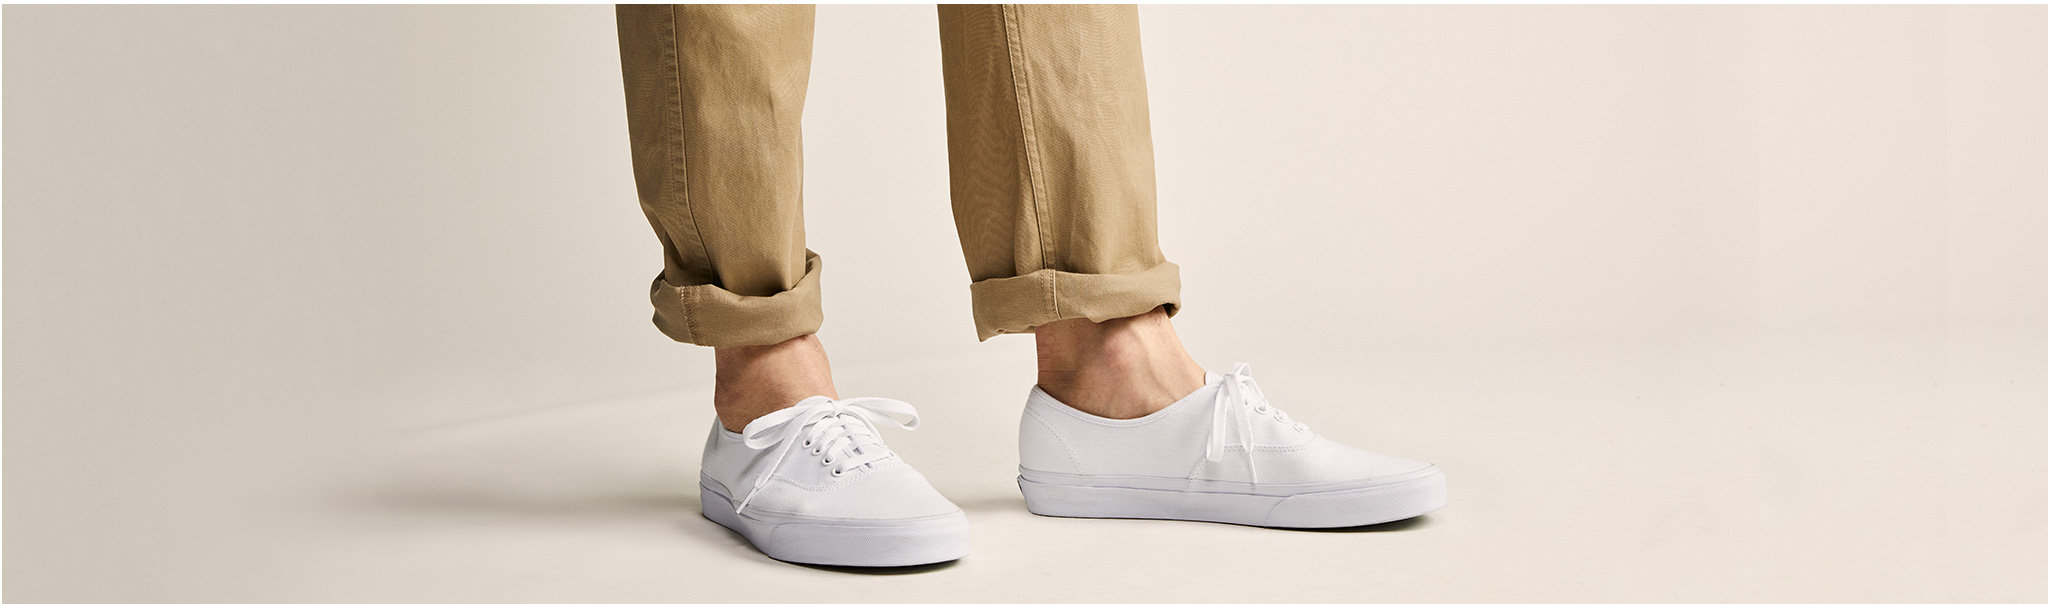 Dockers Slim Fit Khaki with Sneakers